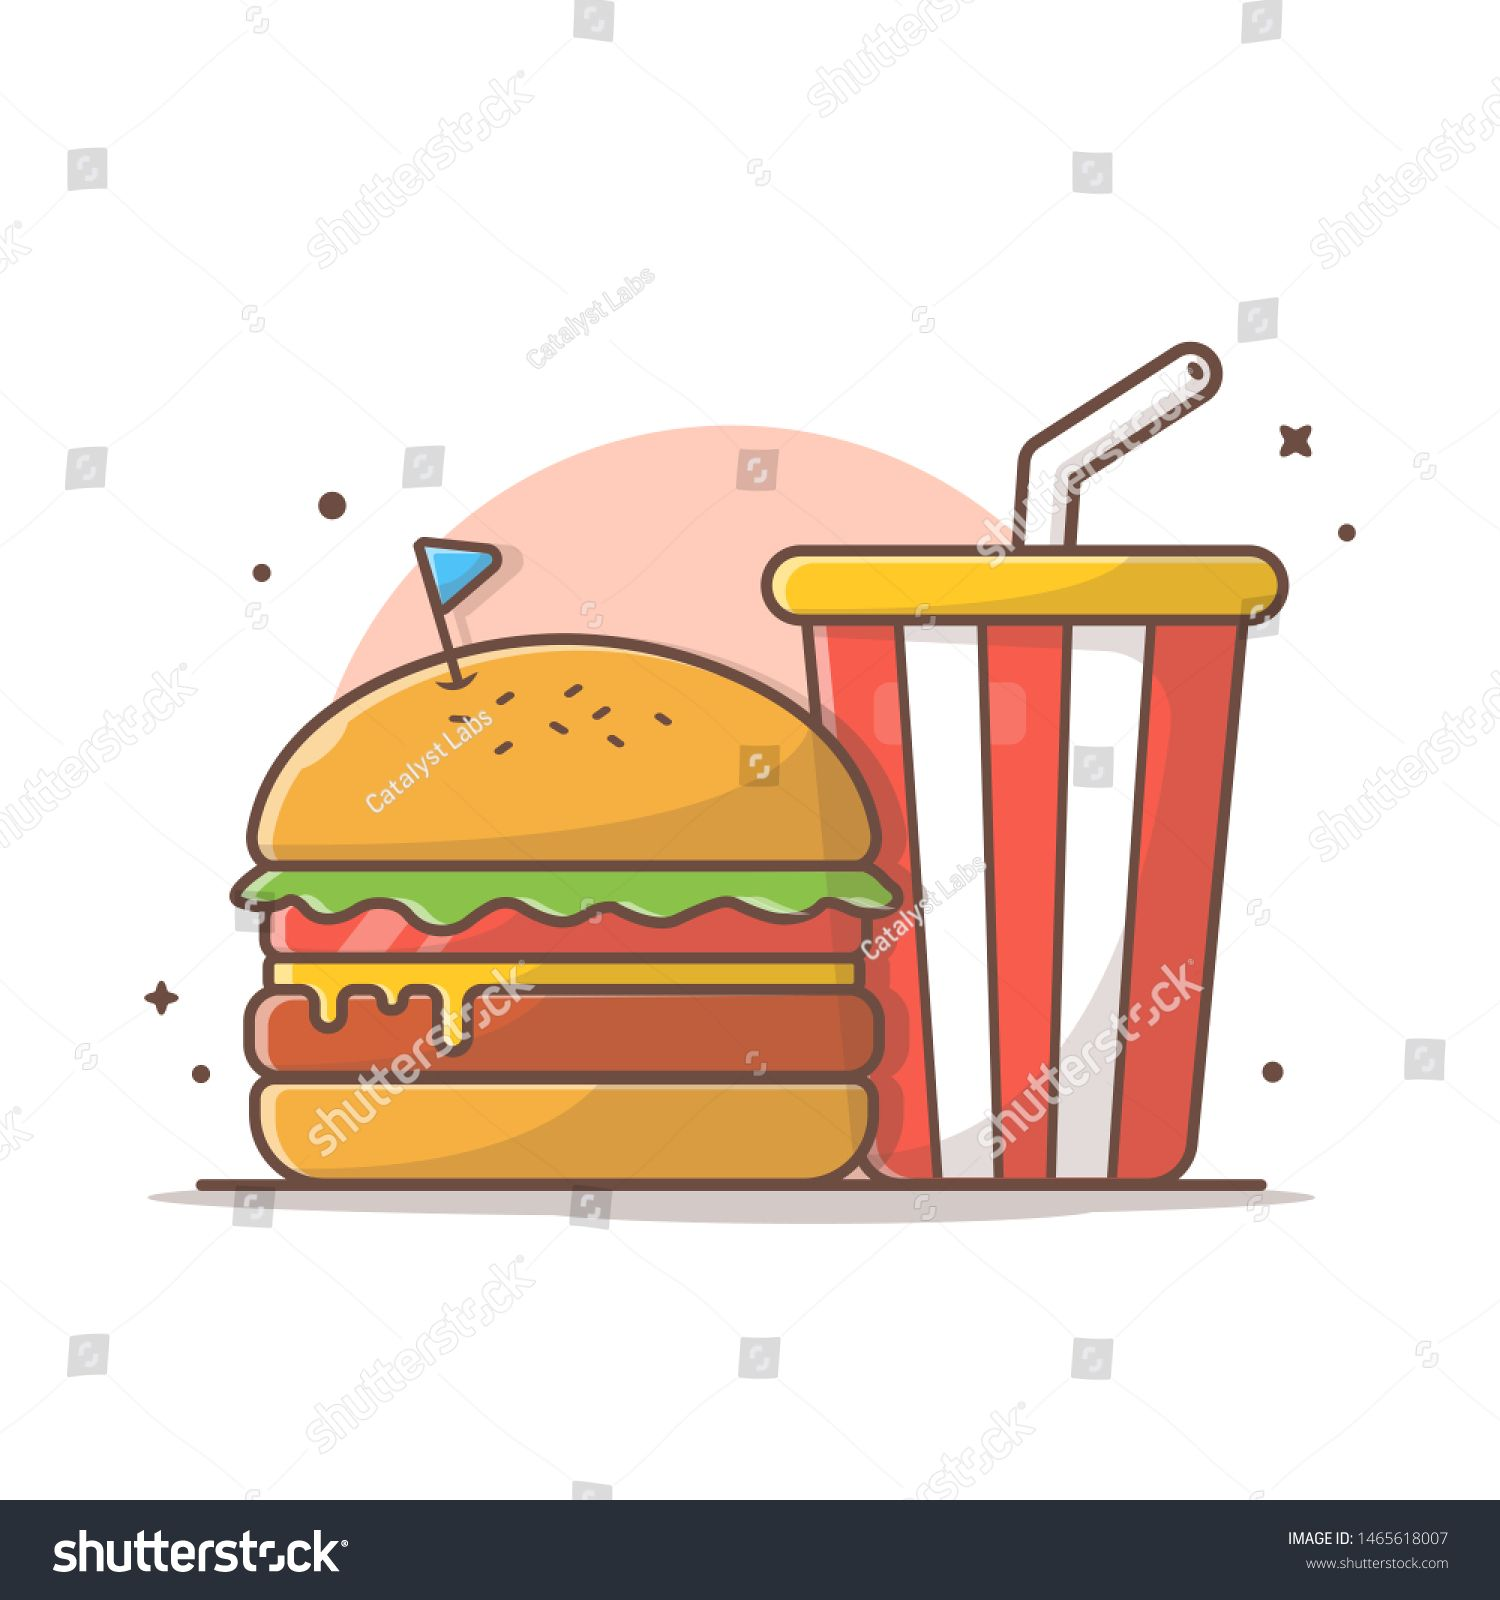 Burger Icon with Soda and Ice Vector Illustration